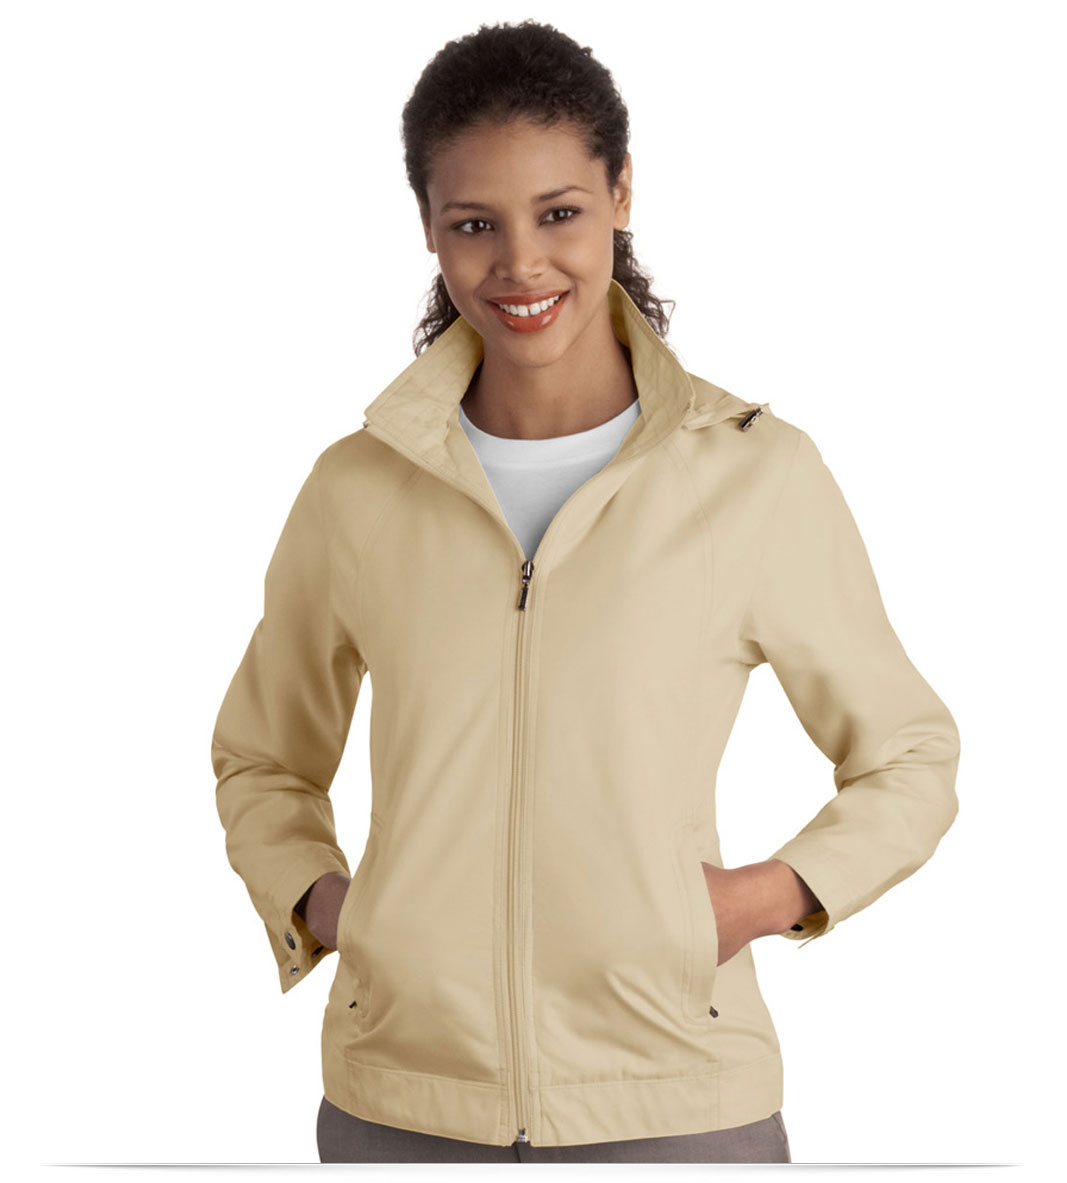 Embroidered Personalized Ladies Jacket